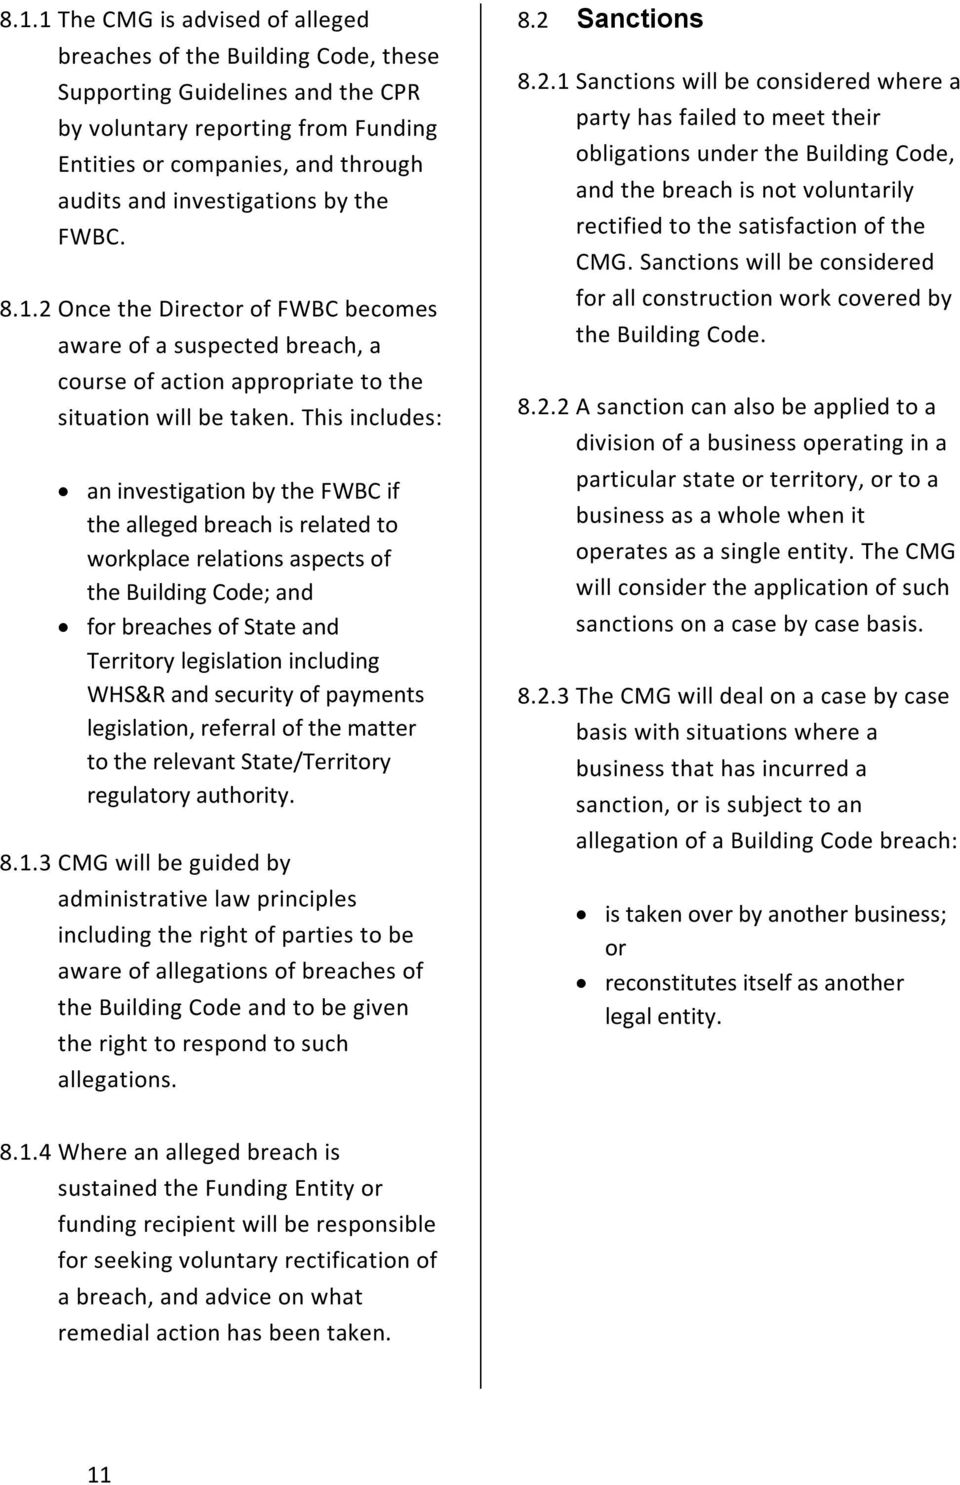 This includes: an investigation by the FWBC if the alleged breach is related to workplace relations aspects of the Building Code; and for breaches of State and Territory legislation including WHS&R